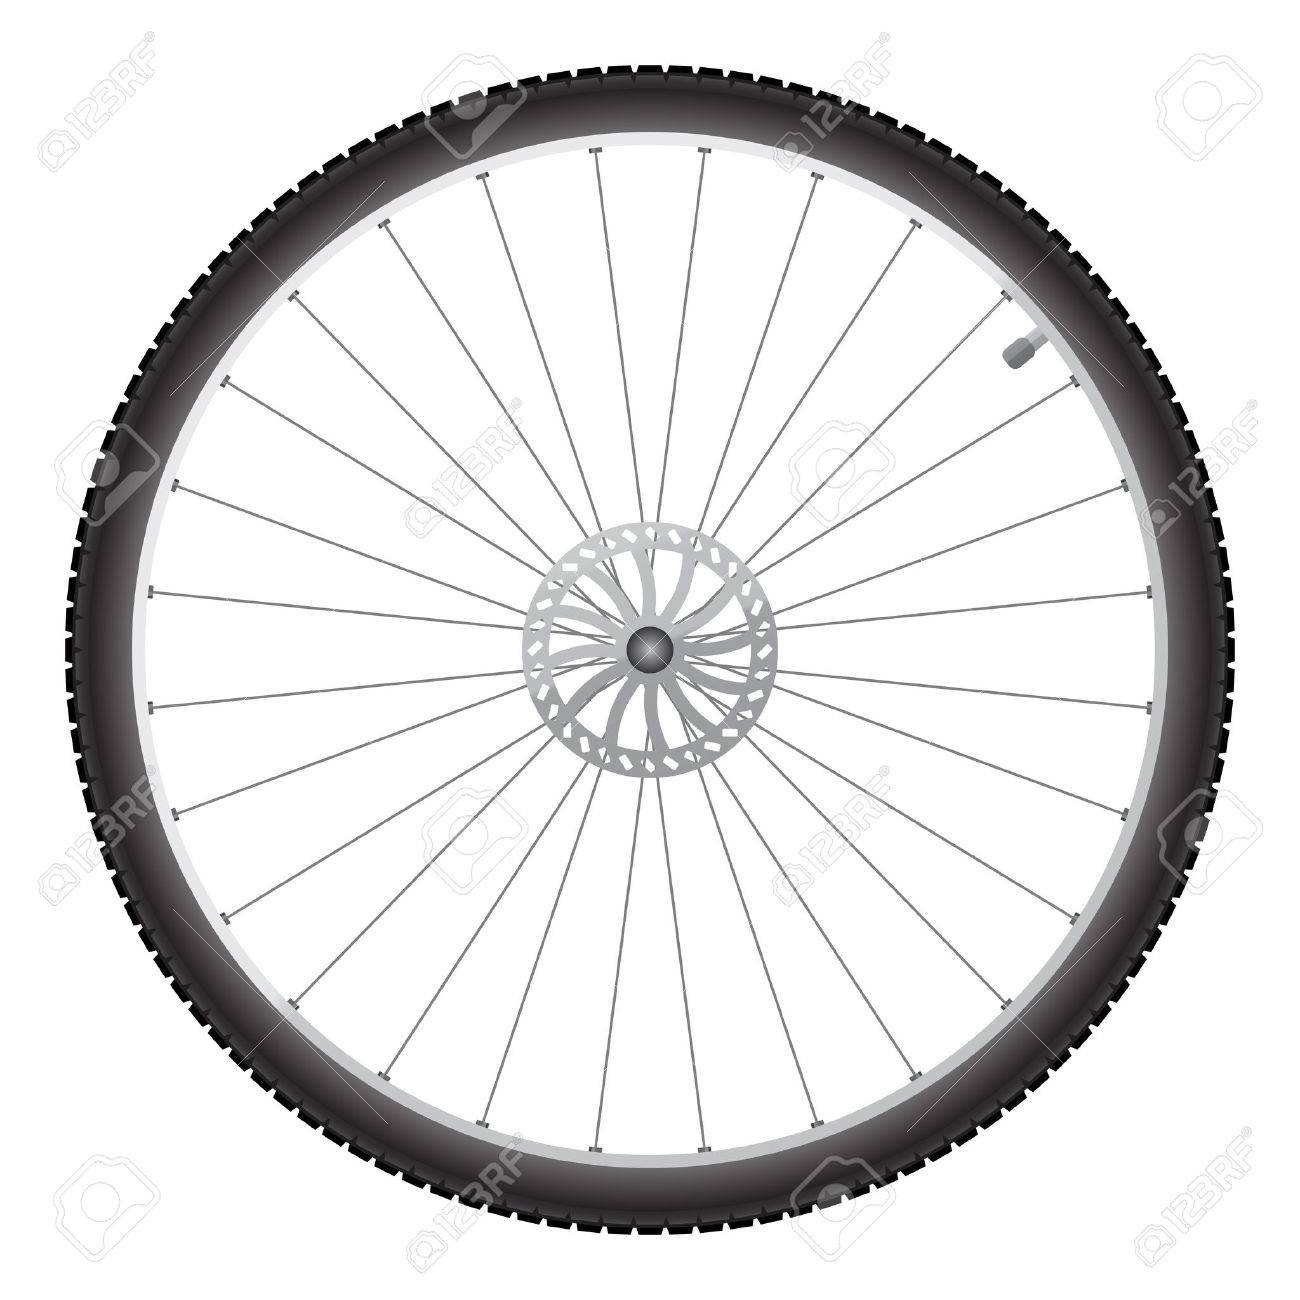 Black bicycle wheel on a white background.